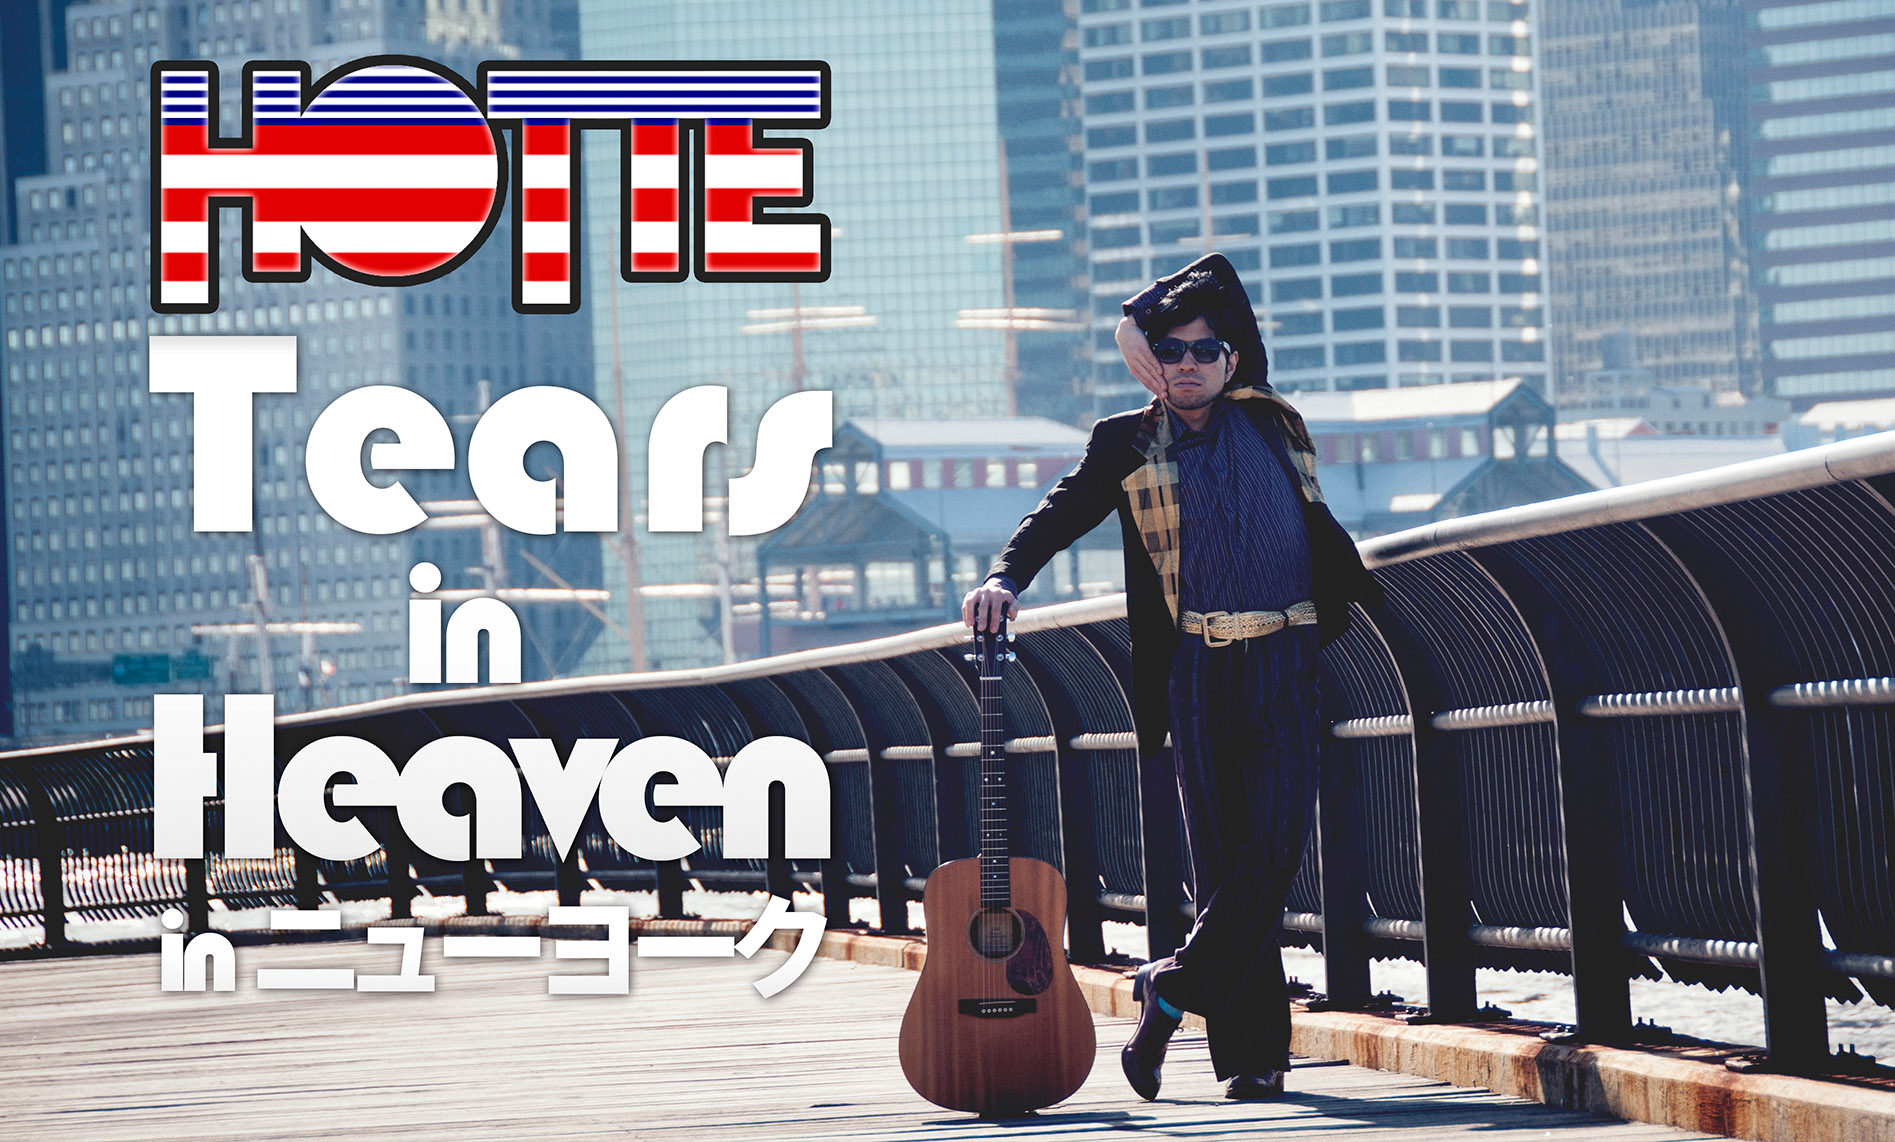 Hotte Tears in Heaven in New York- Episode: Ray Soul in Harlem